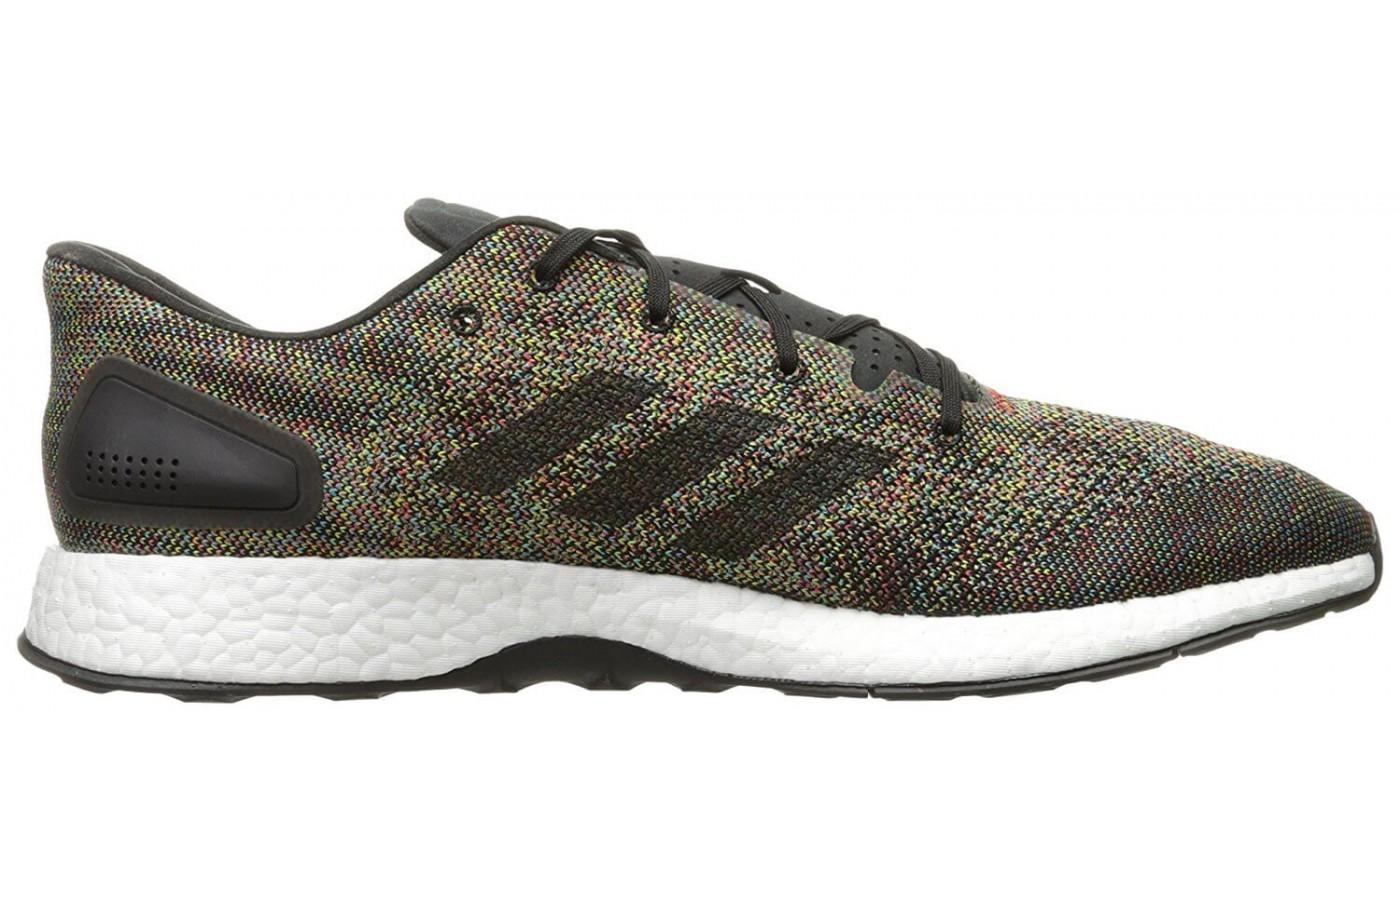 Adidas PureBOOST DPR LTD is fashionable yet functional